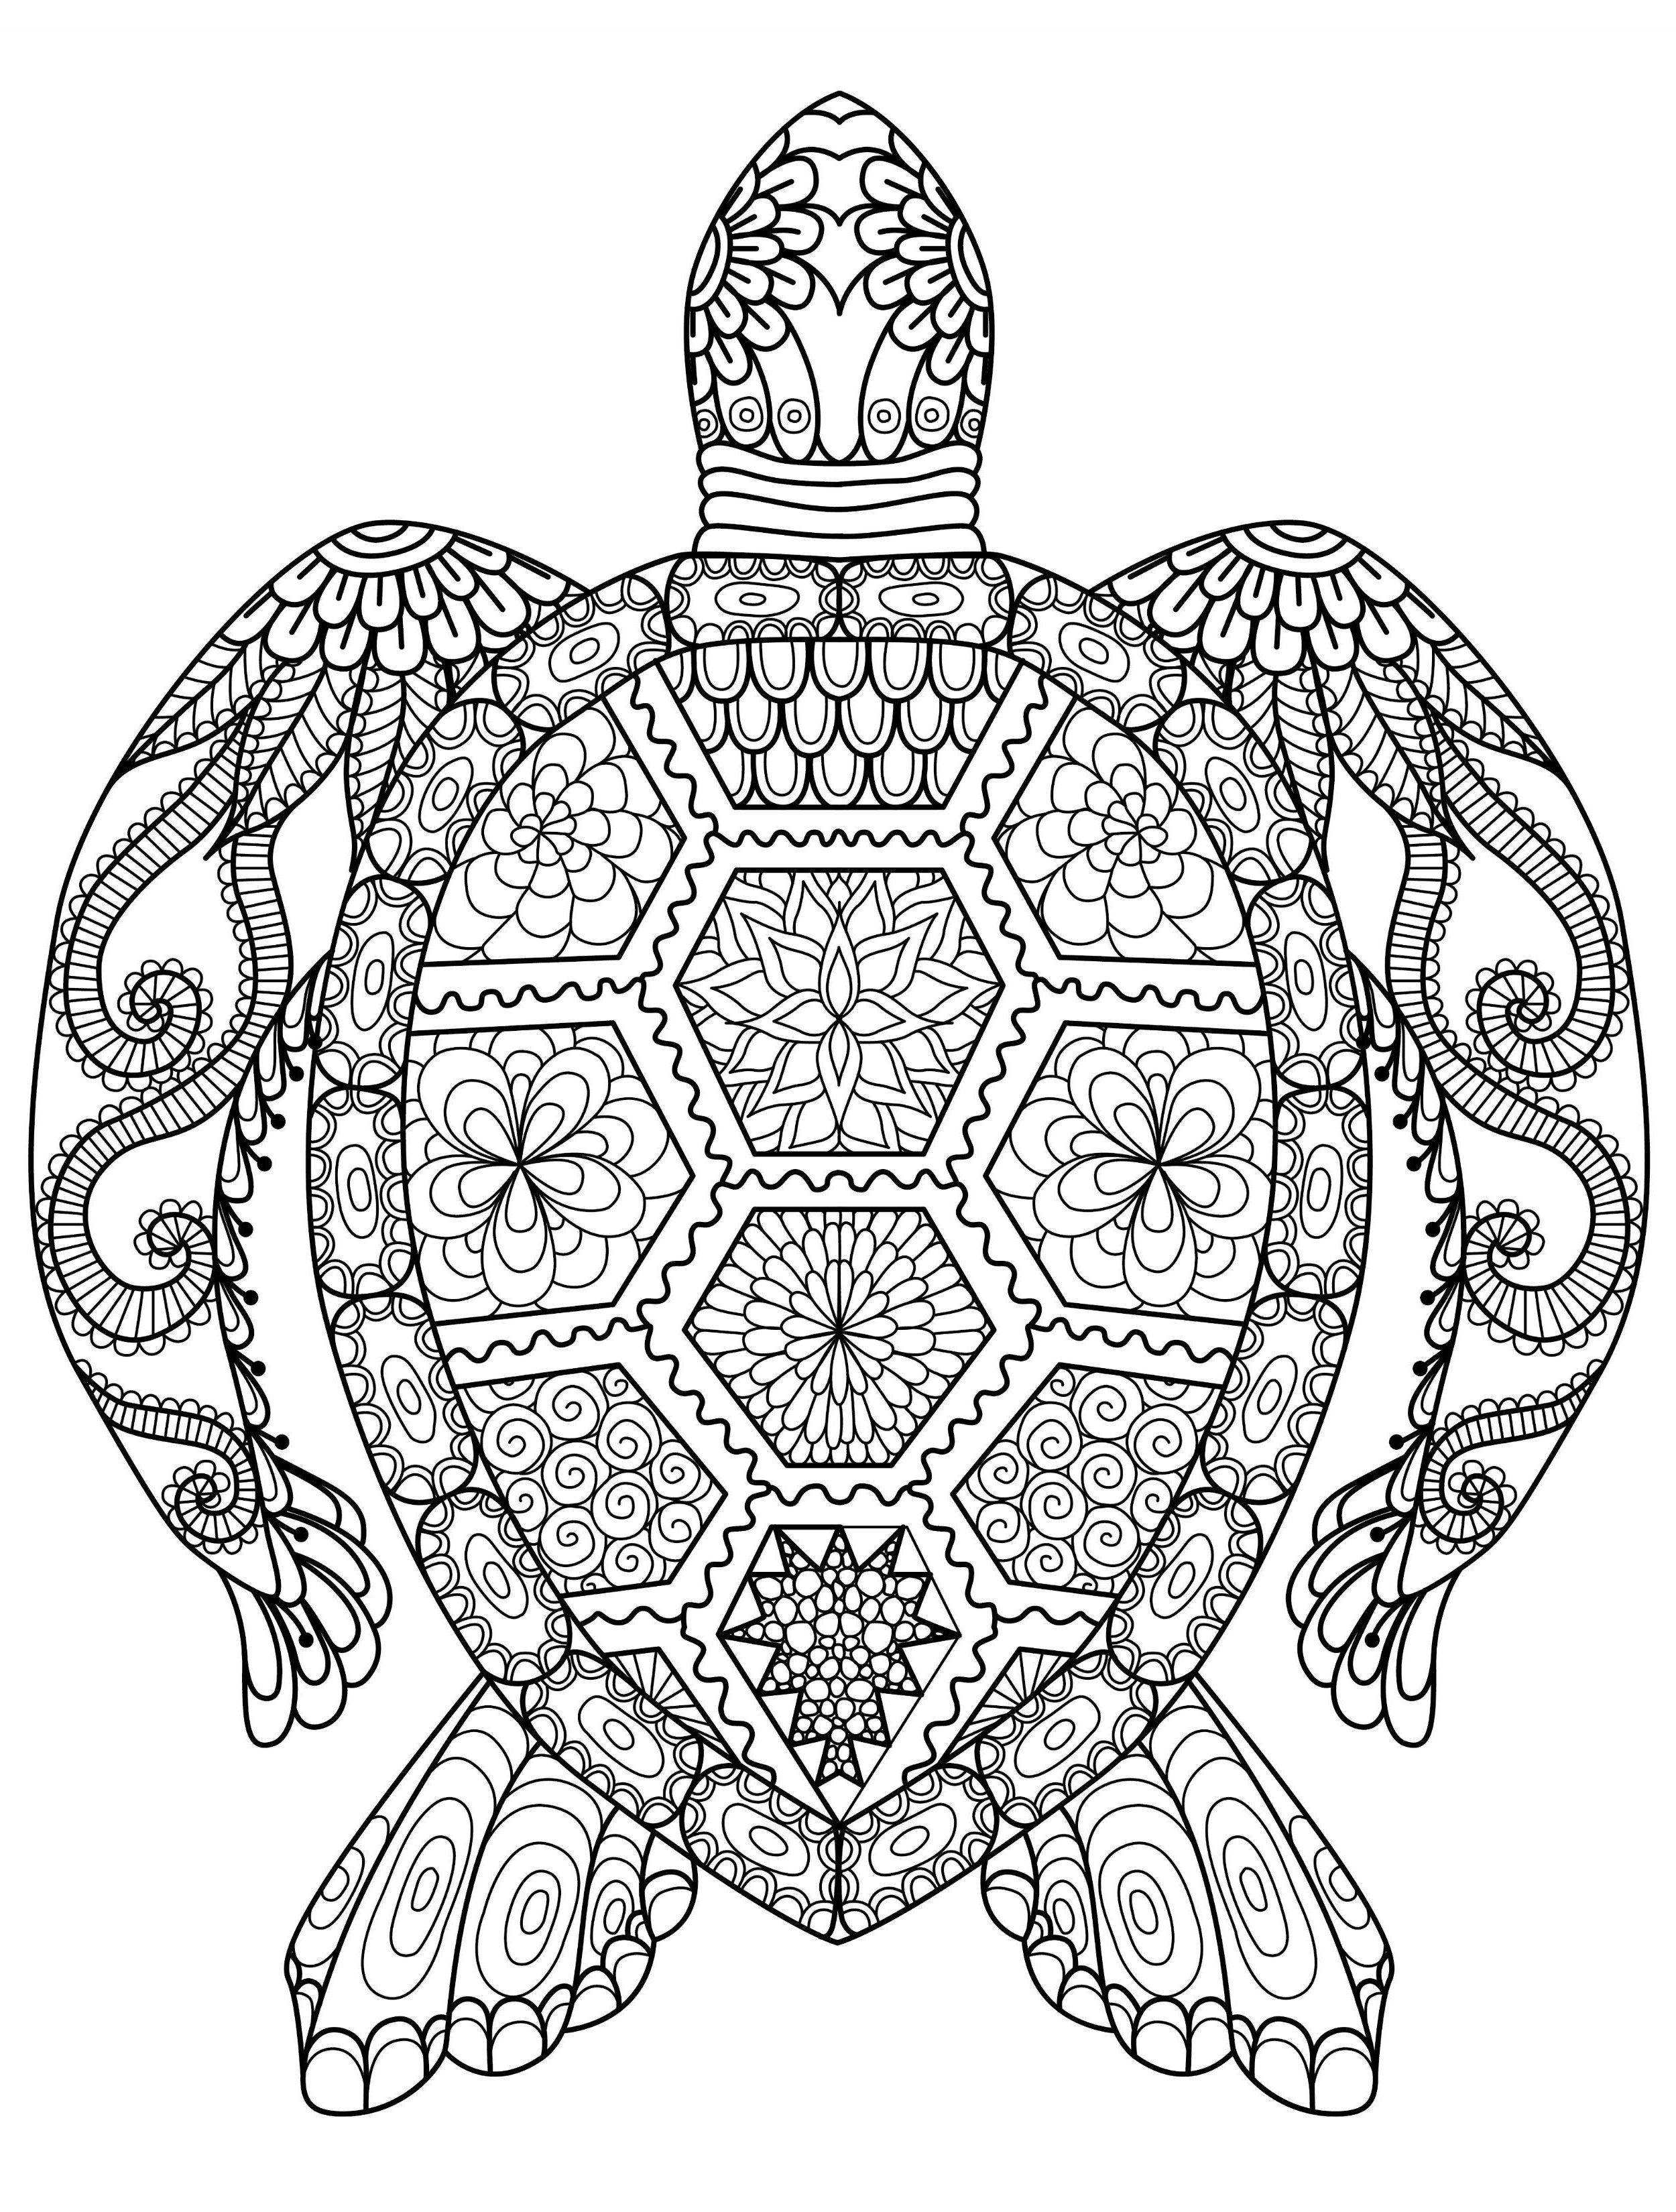 Zen Coloring Pages Turtle Coloring Pages Animal Coloring Books Mandala Coloring Pages